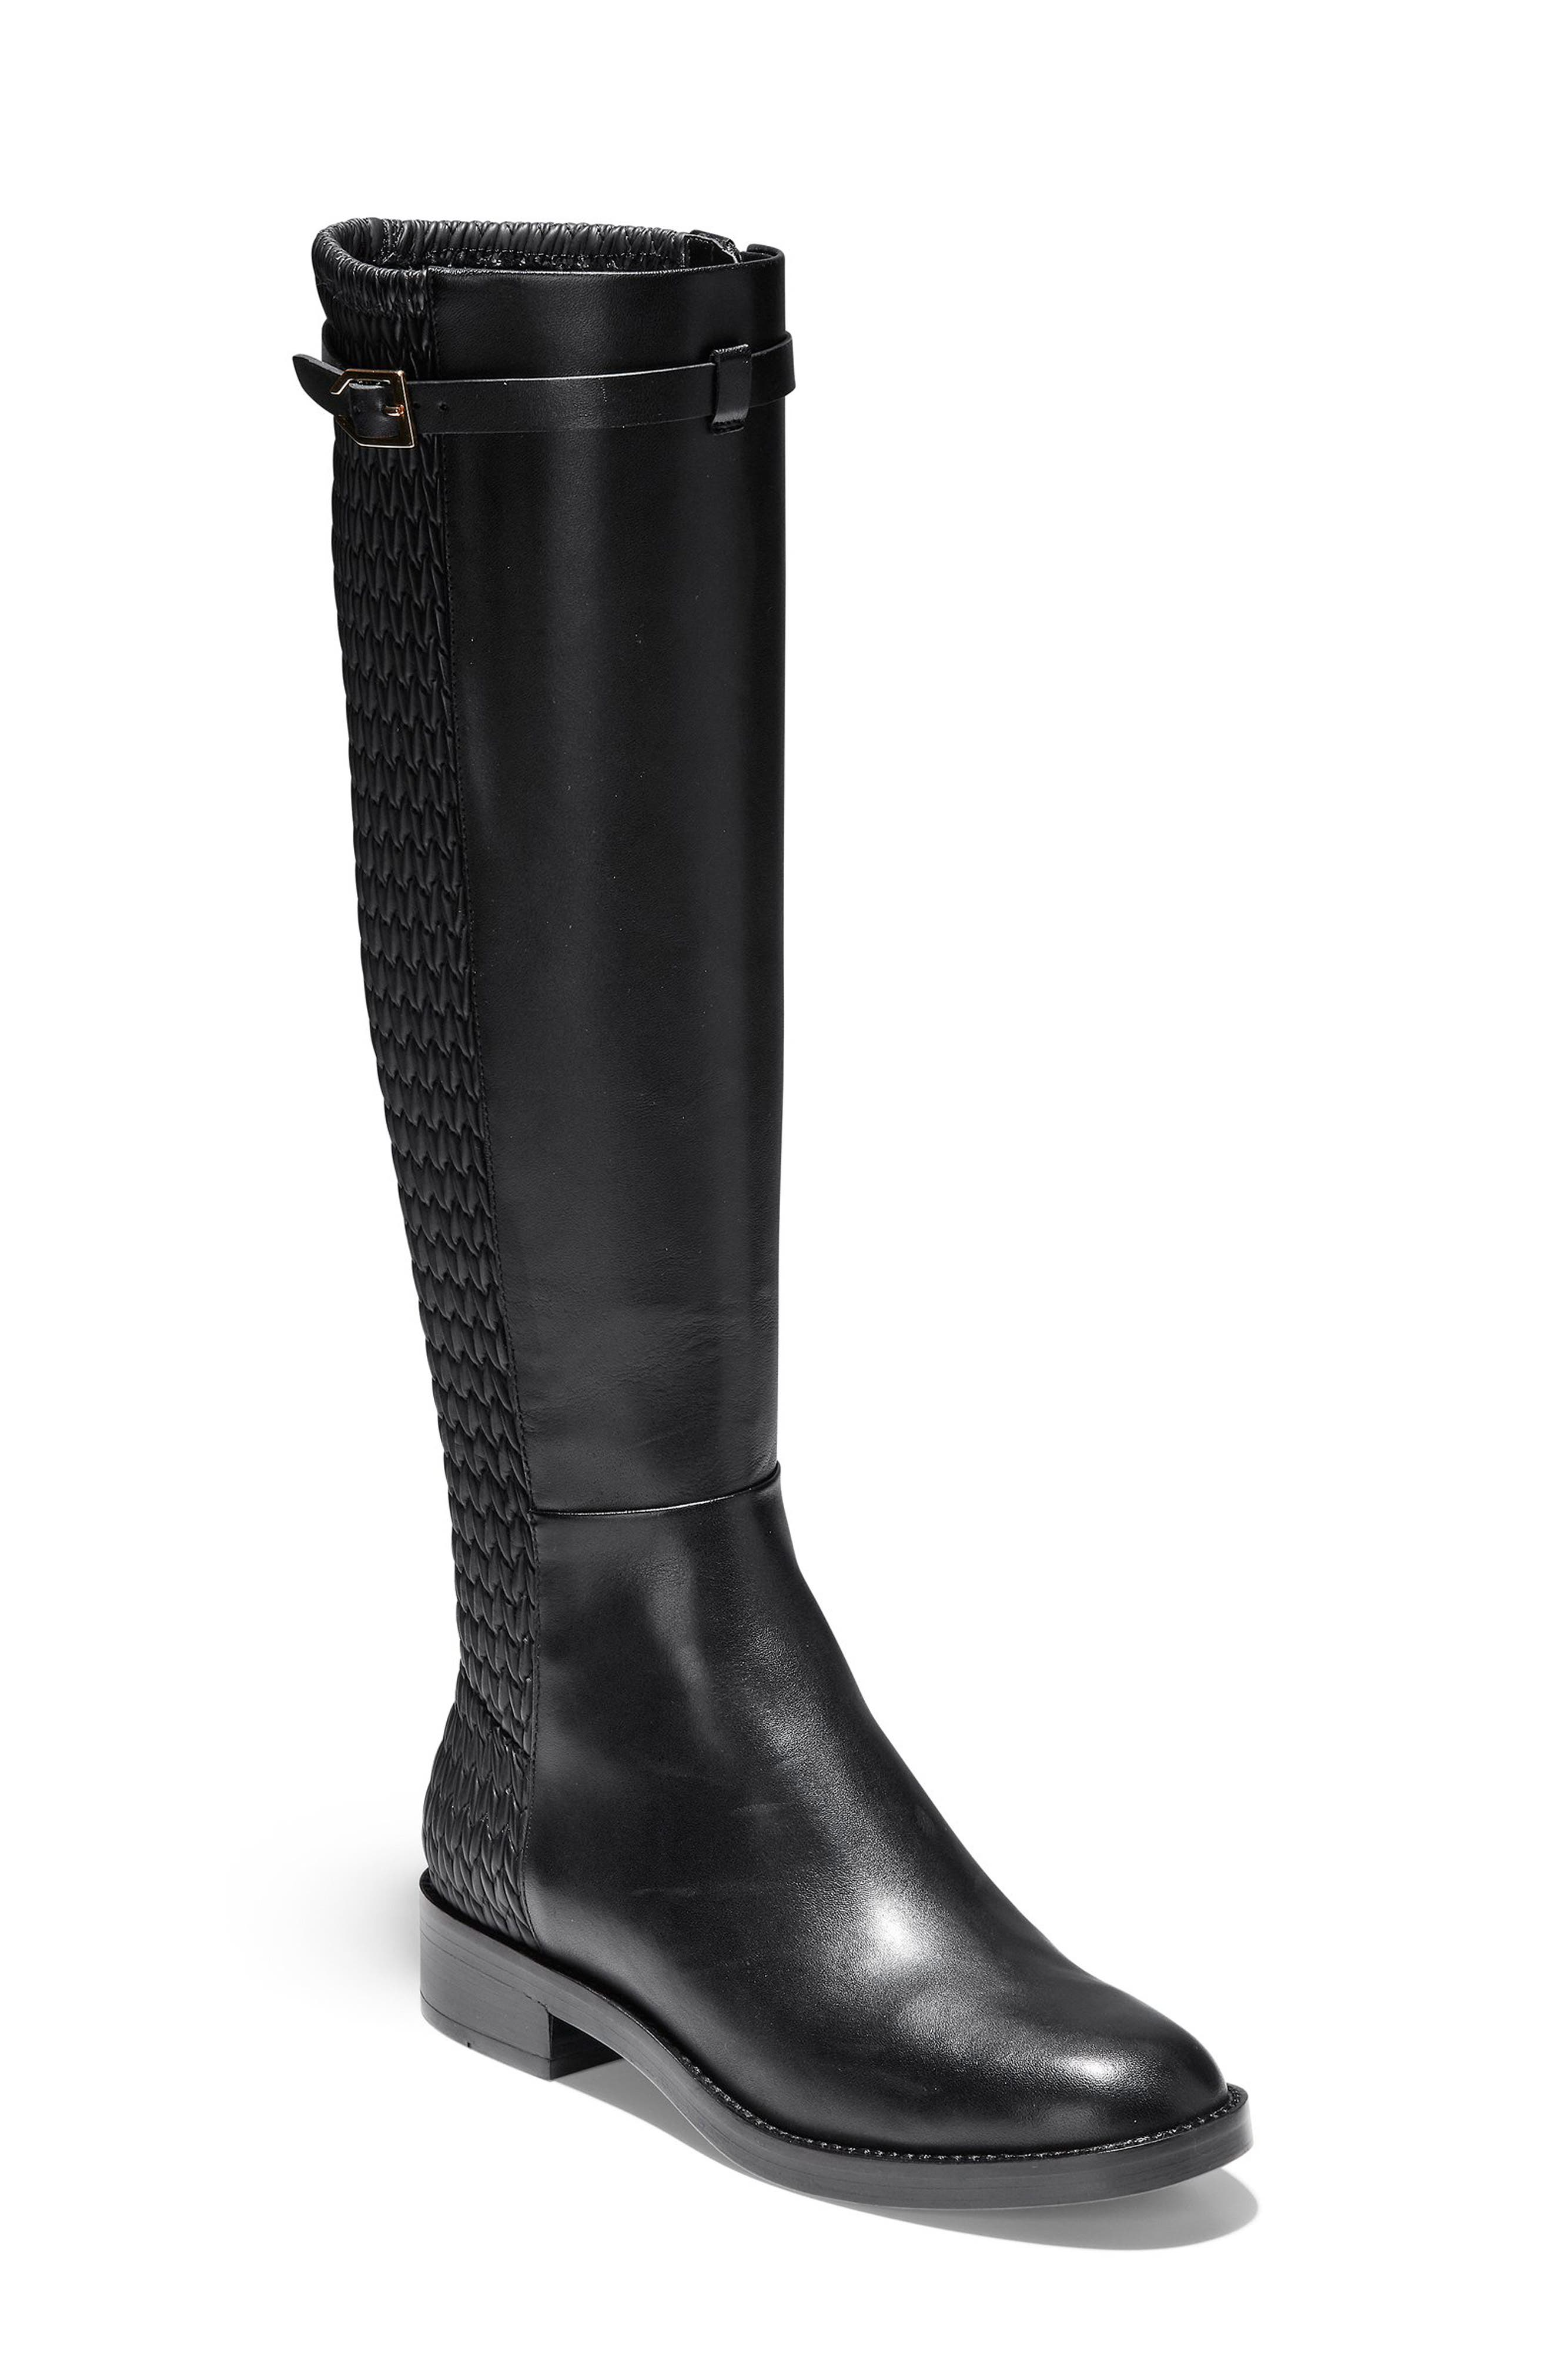 Cole Haan Lexi Grand Knee High Stretch Boot B - Black